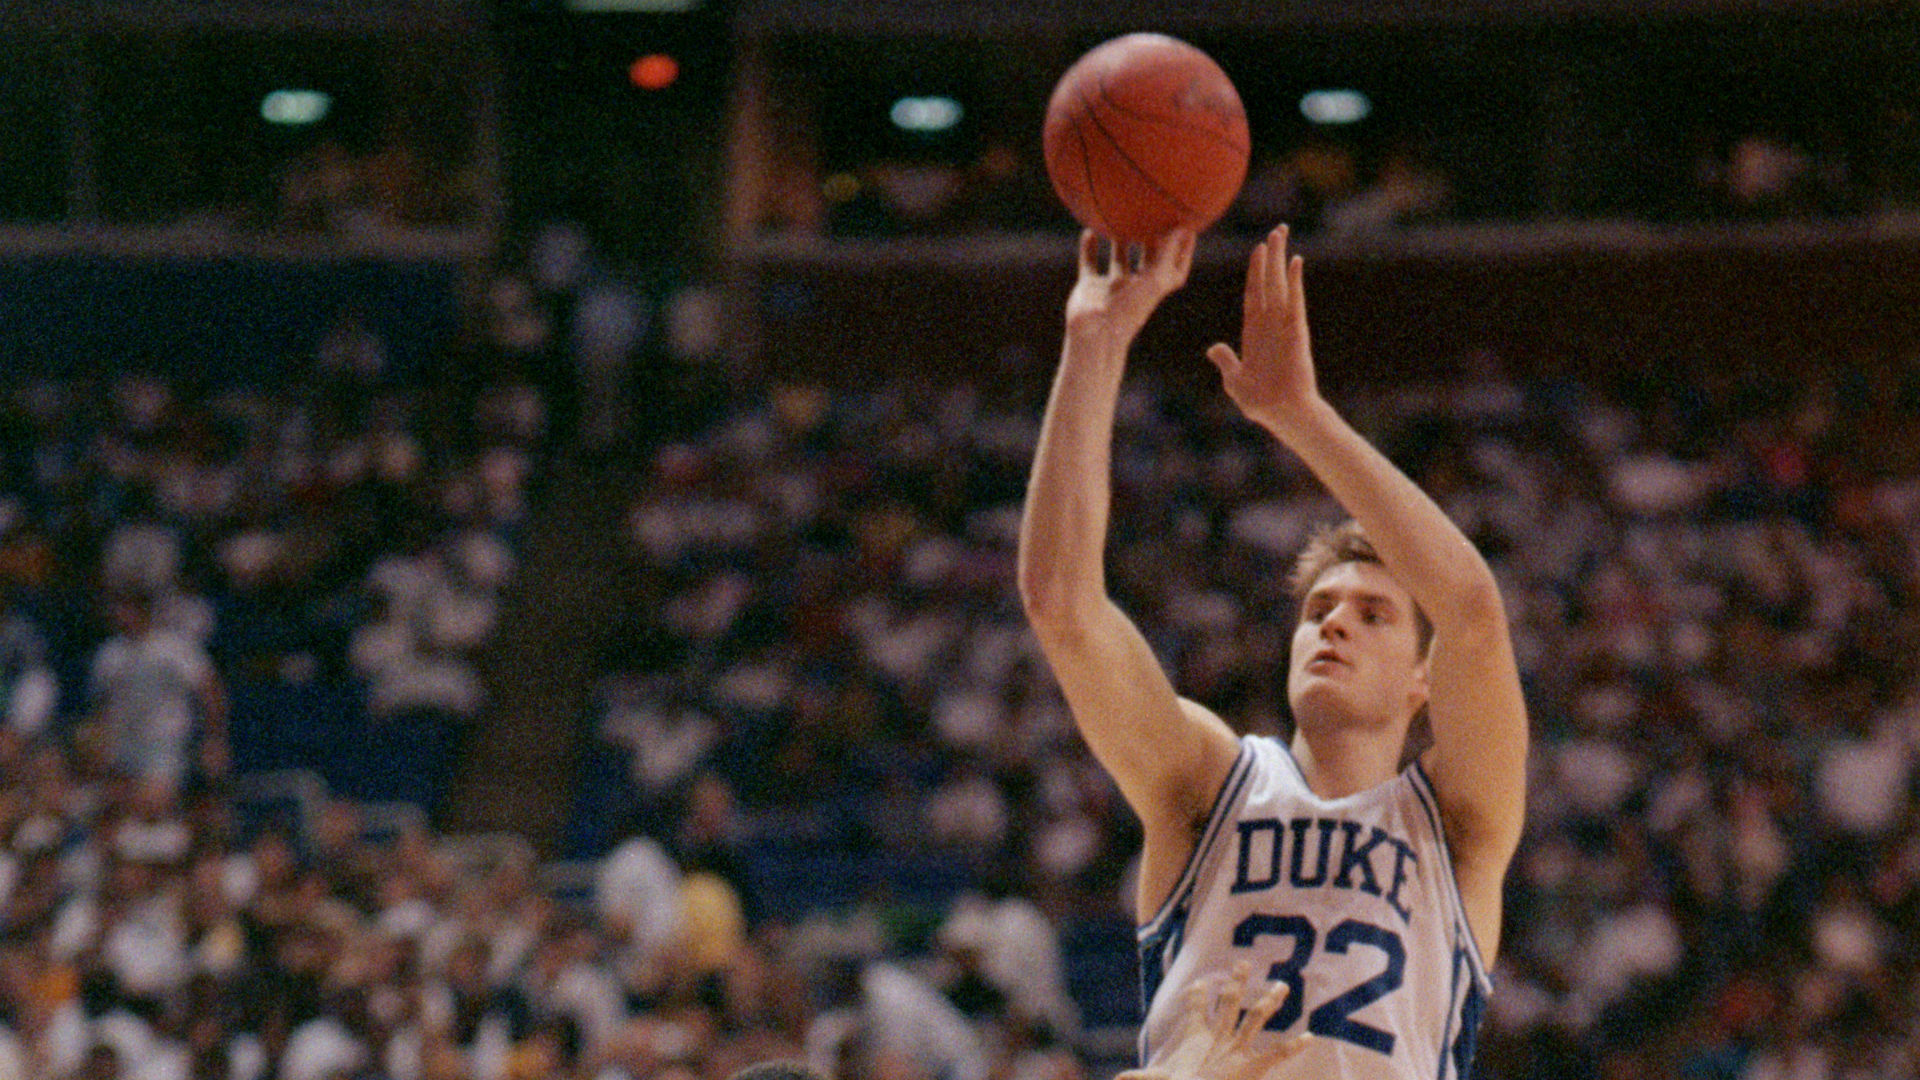 Best buzzer-beaters in March Madness history: Laettner, Jenkins or Suggs at No. 1?